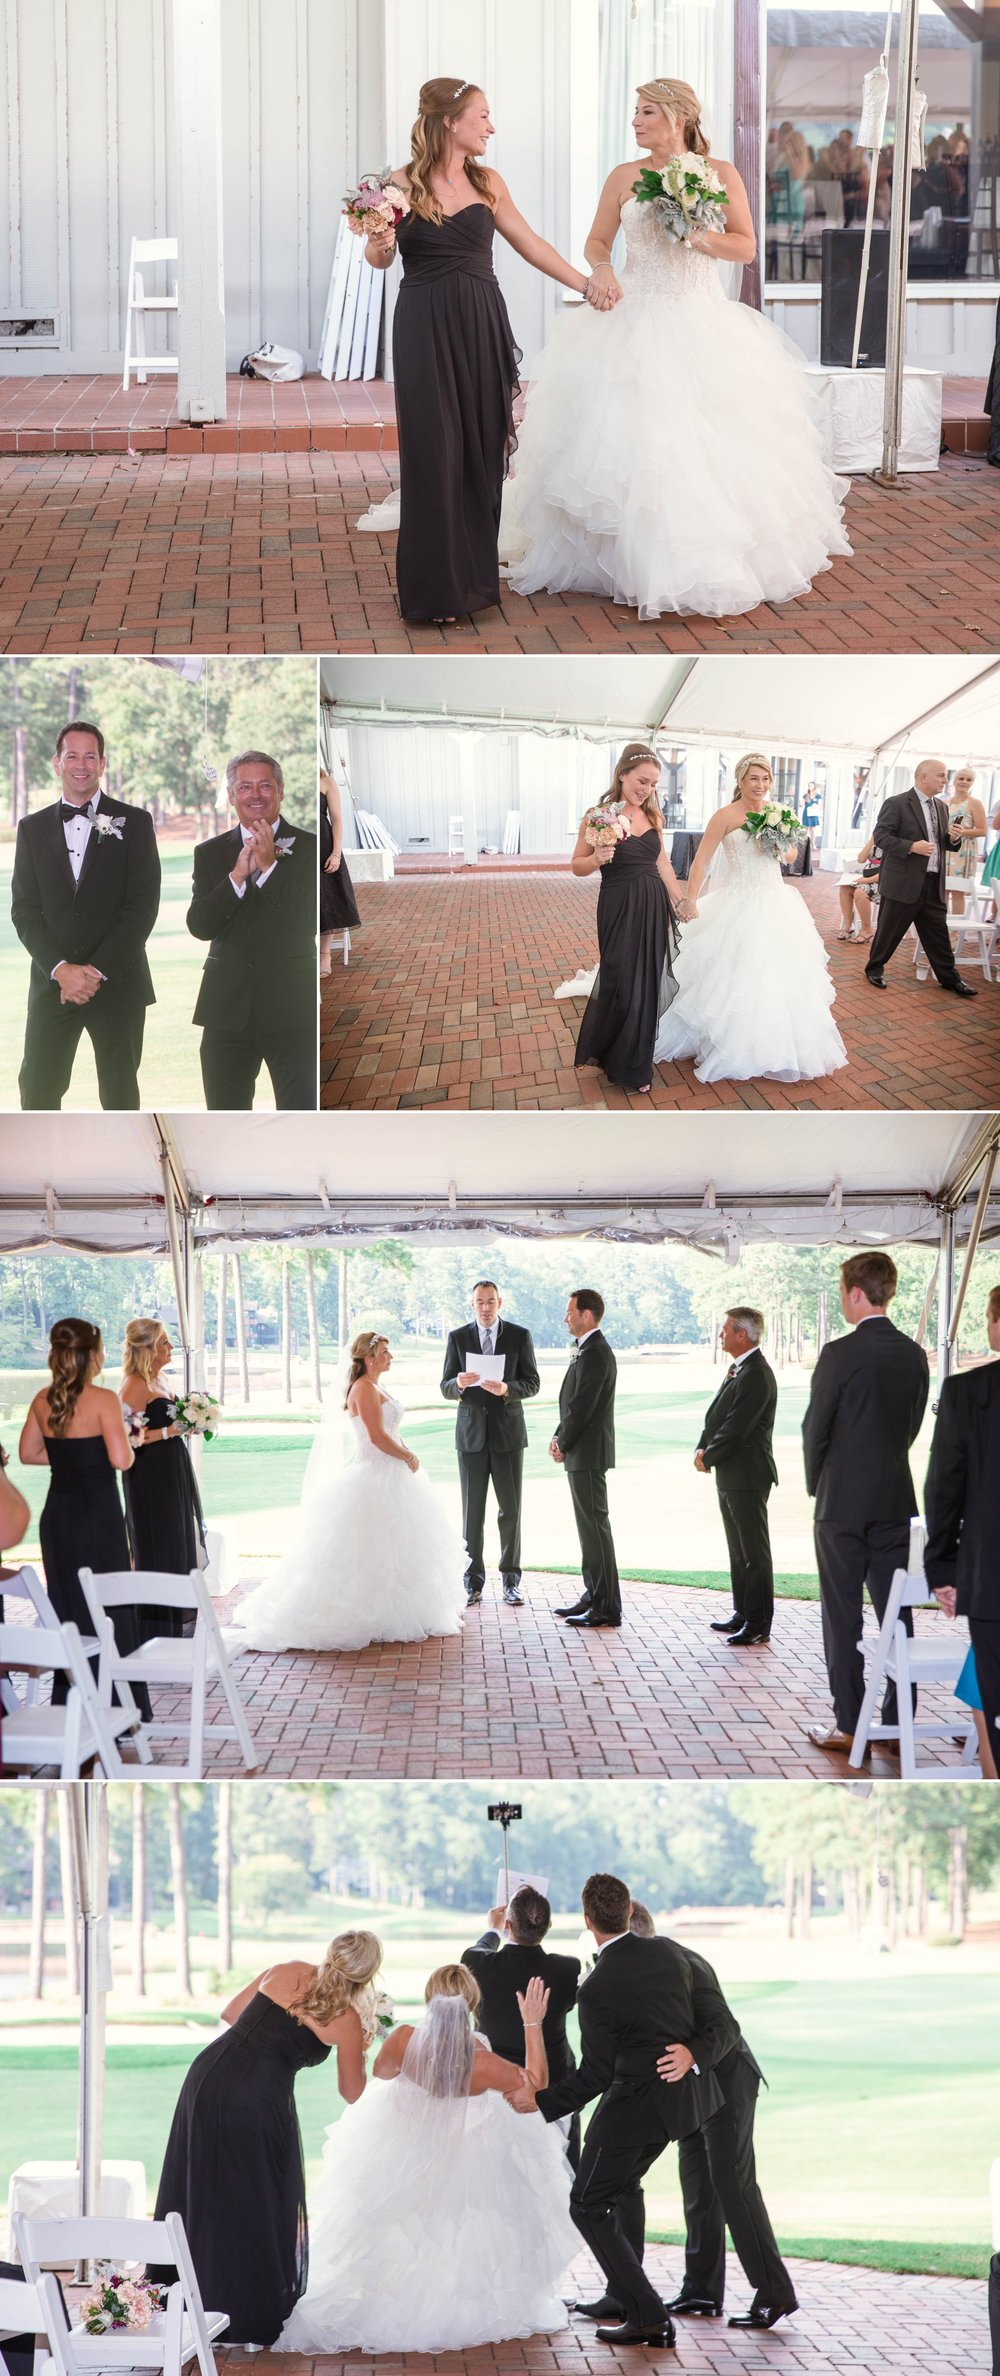 Ceremony - Dona + Doug - MacGregor Downs Country Club in Cary, NC - Raleigh Wedding Photographer